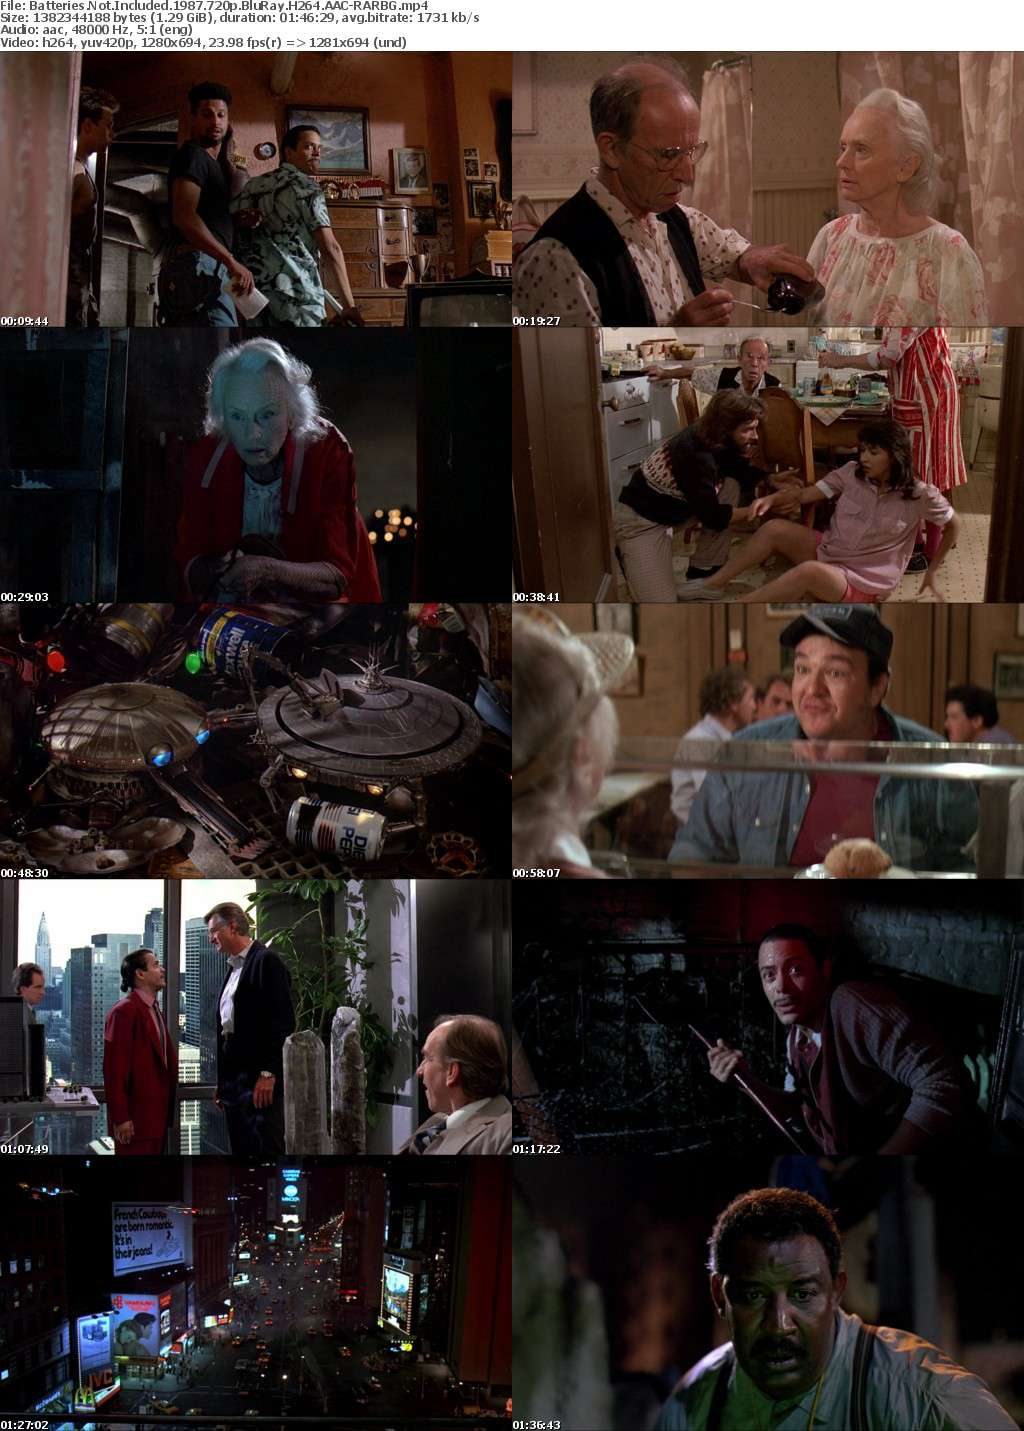 Batteries Not Included 1987 720p BluRay H264 AAC-RARBG